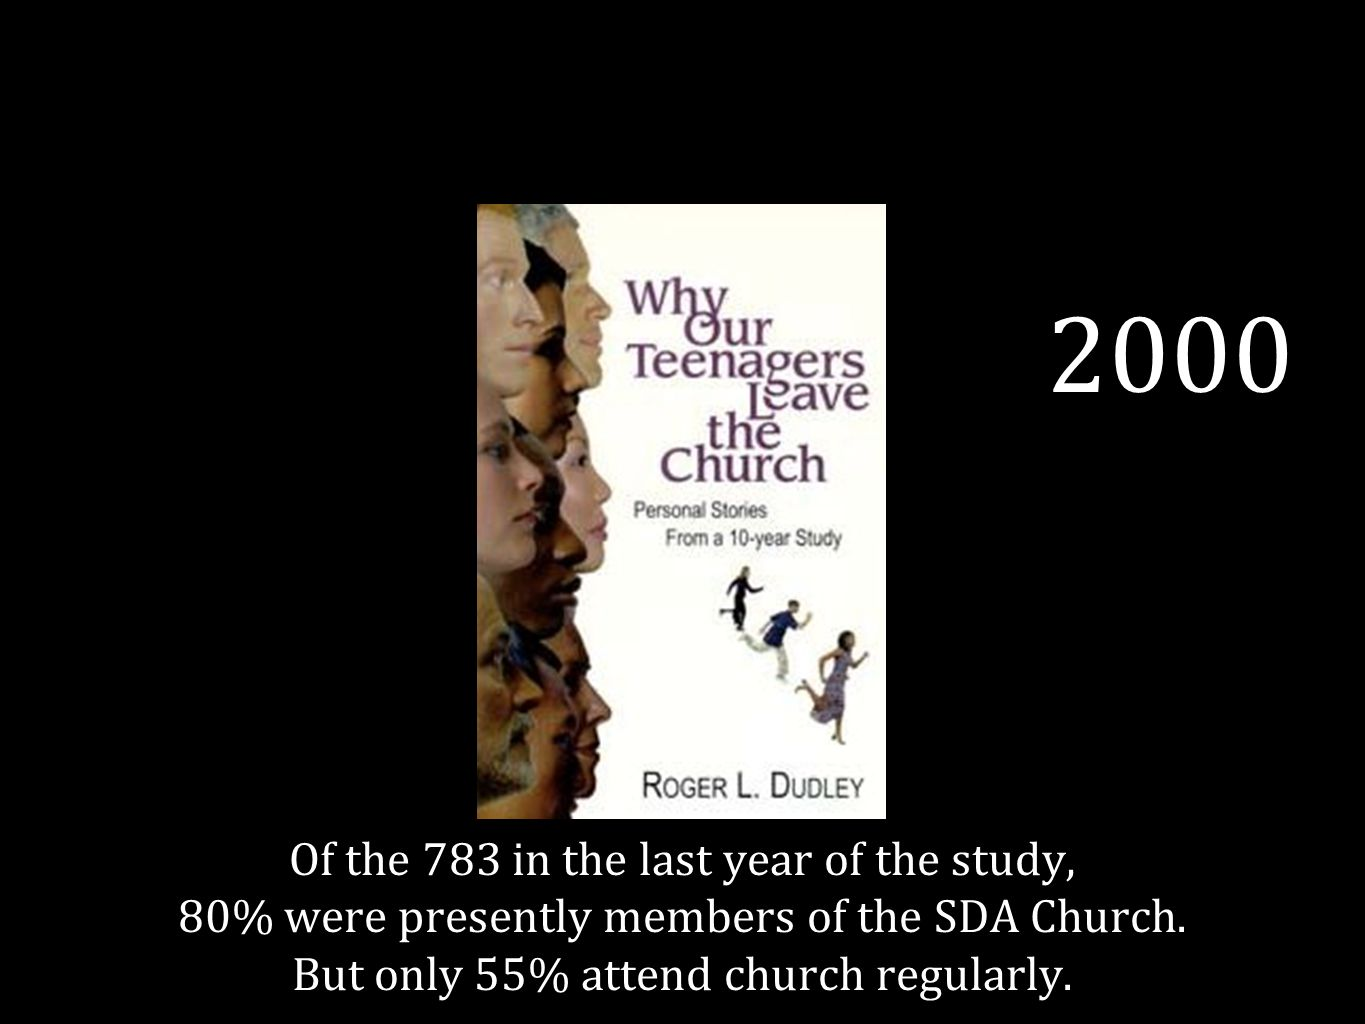 2000 Of the 783 in the last year of the study, 80% were presently members of the SDA Church.